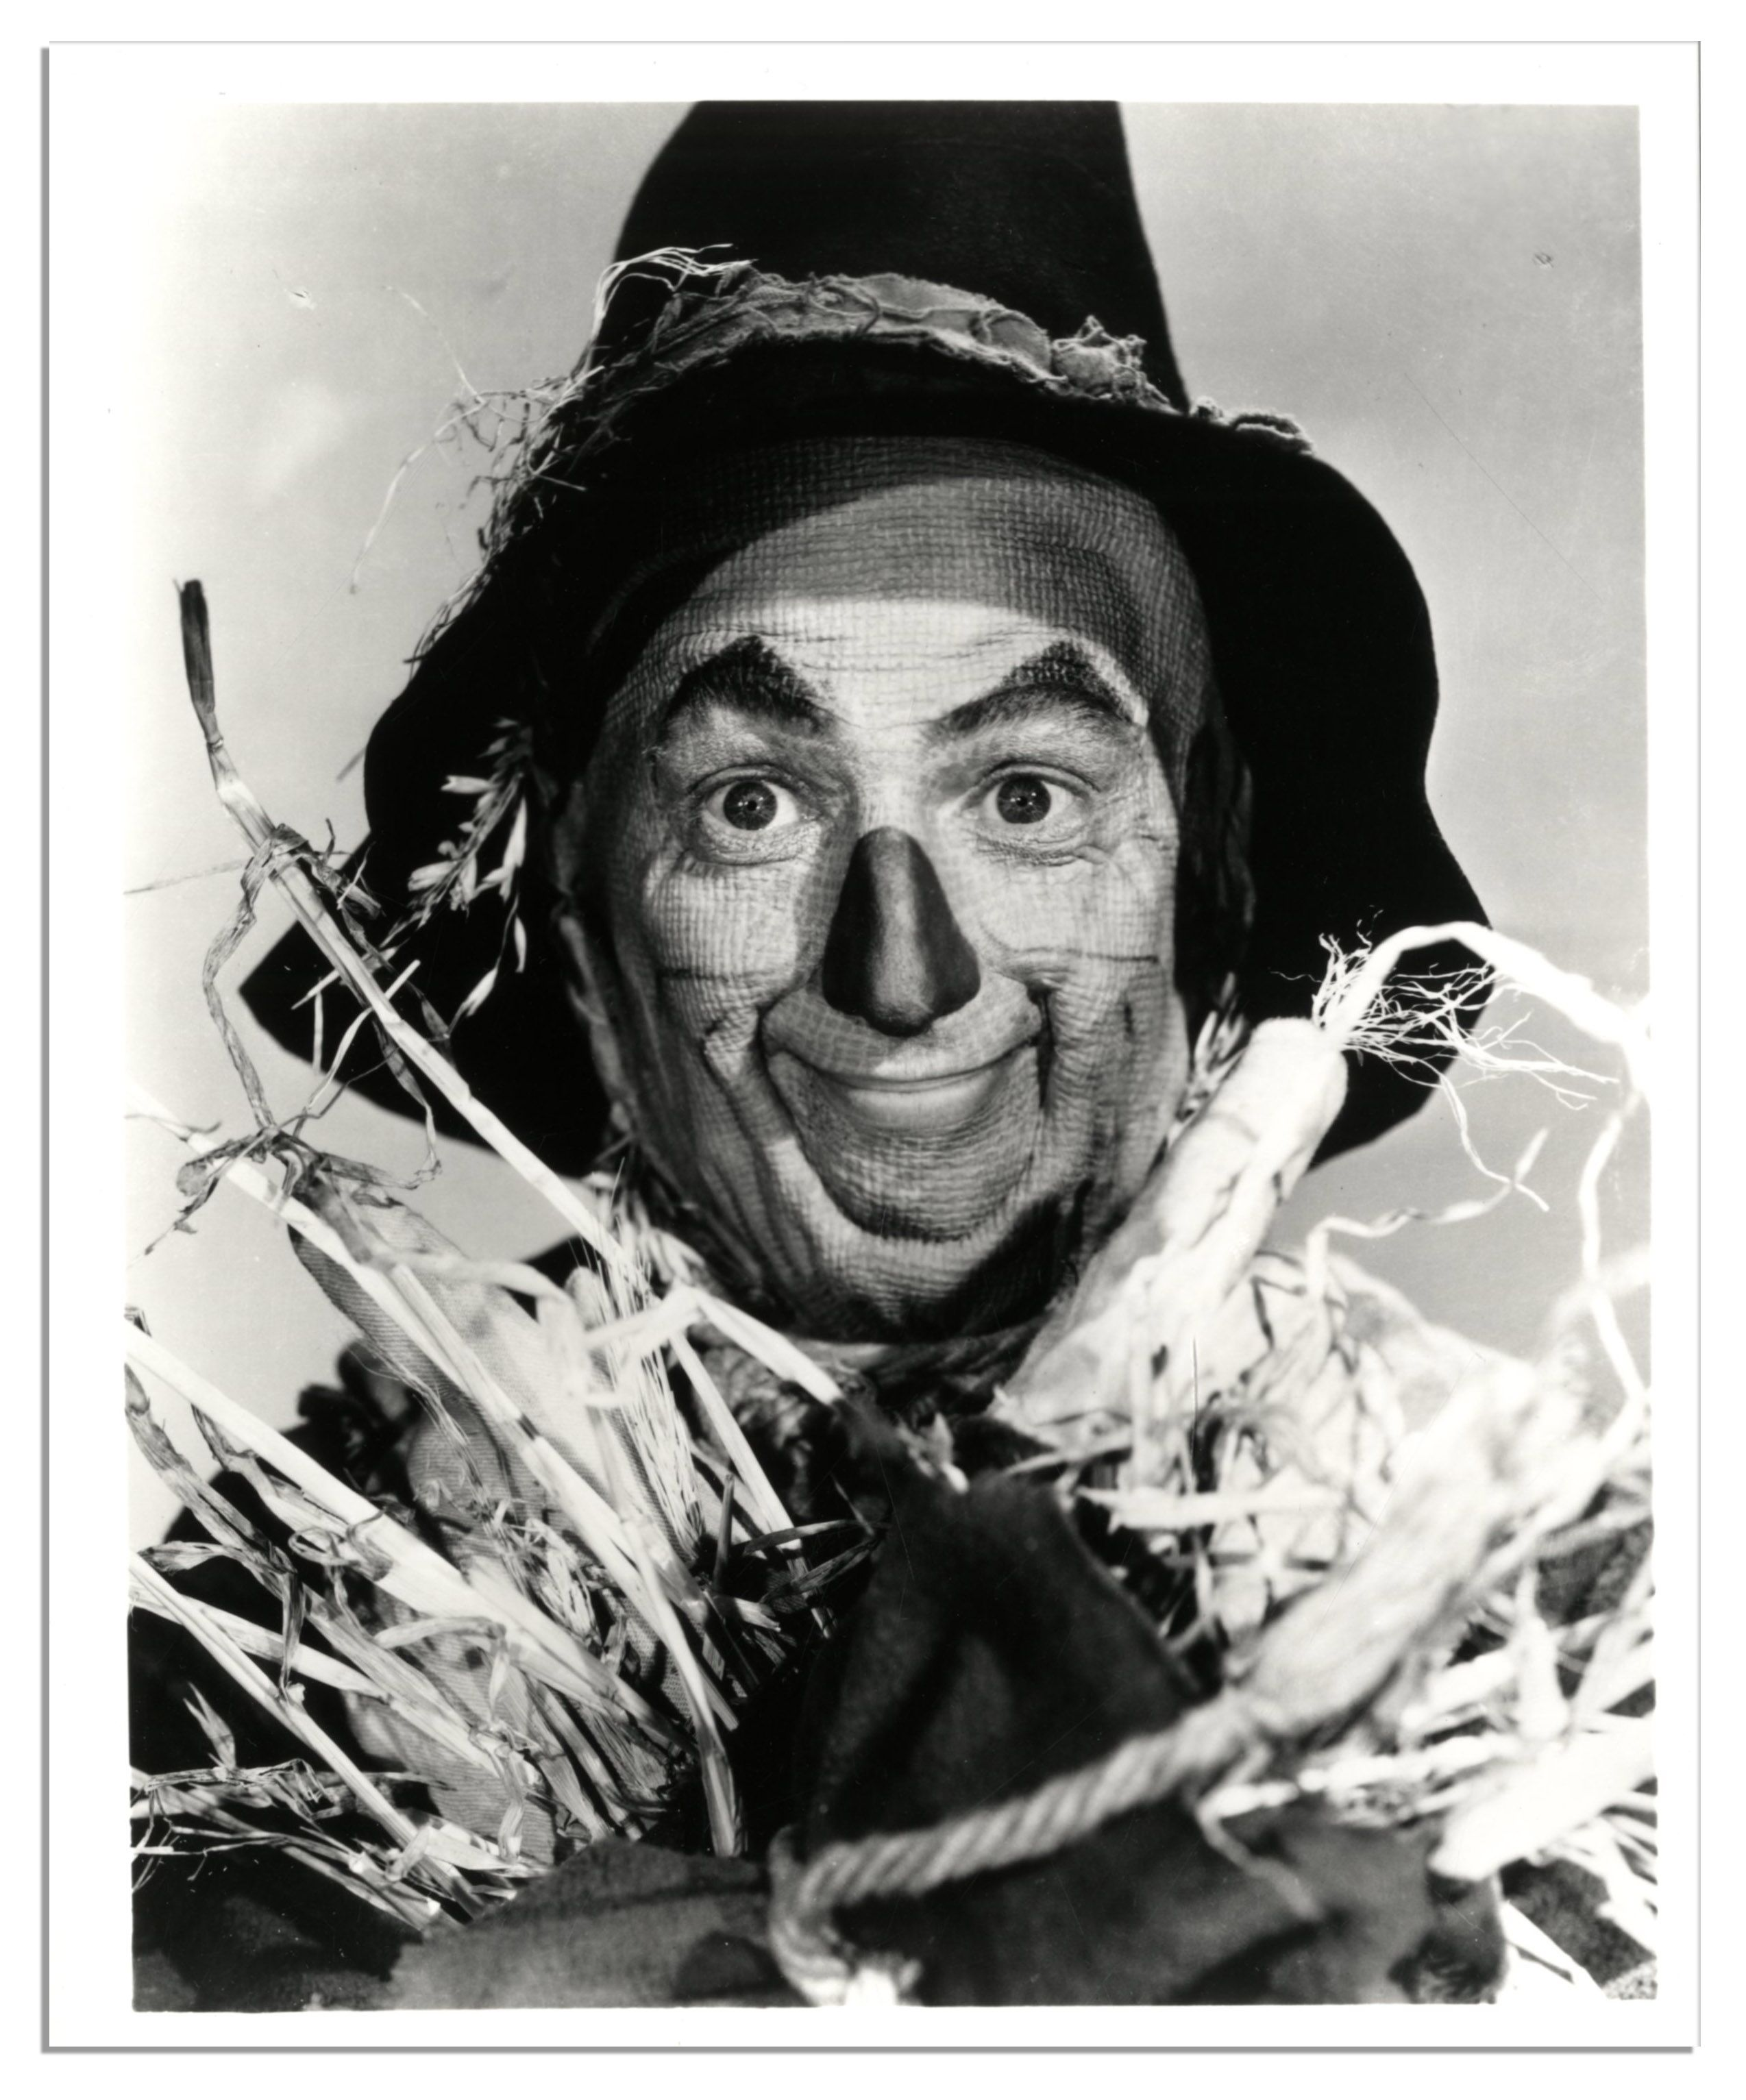 Scarecrow face wizard of oz - photo#14